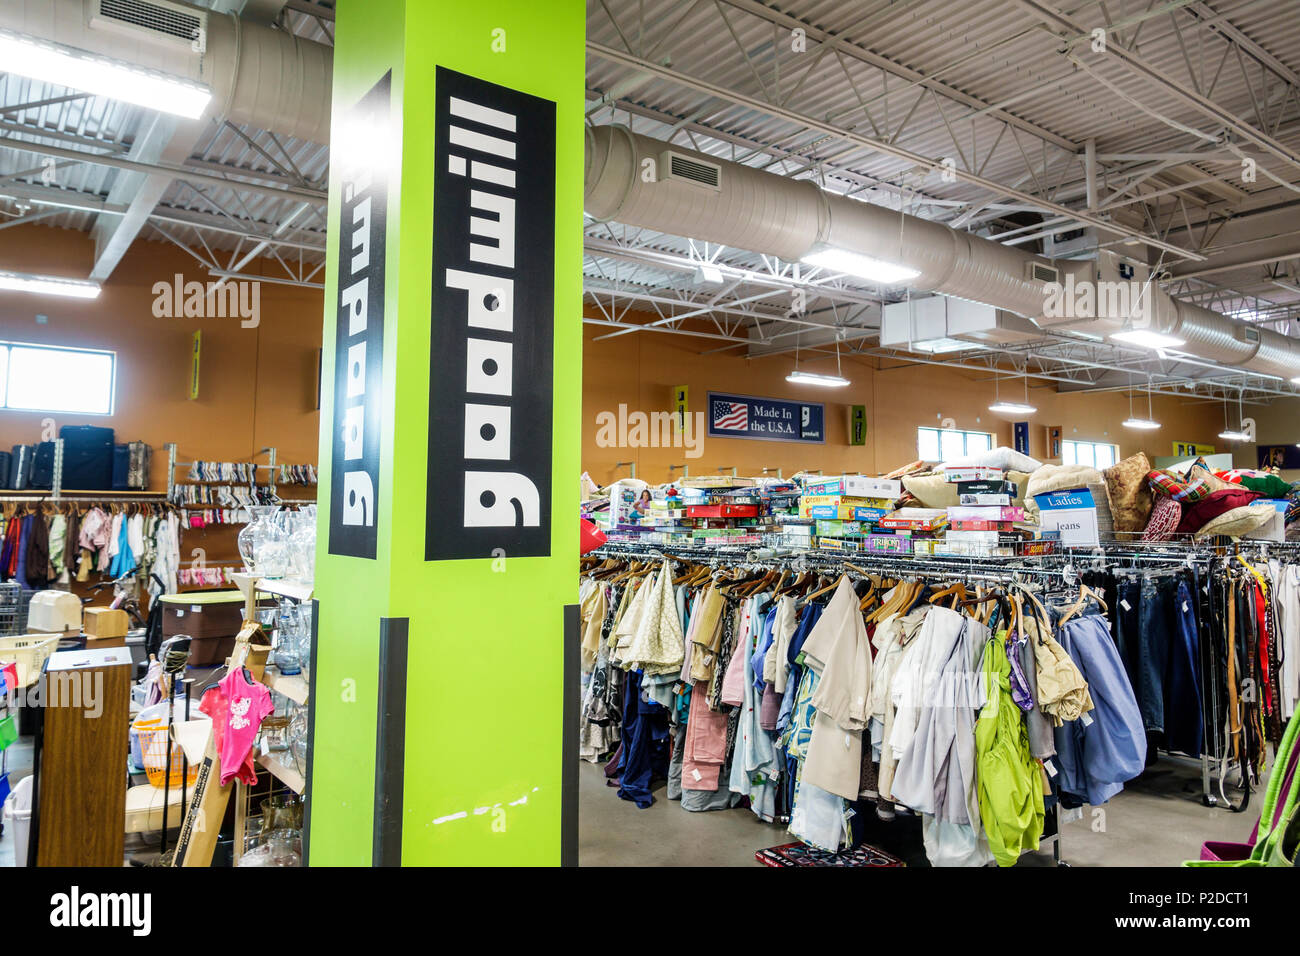 Florida Daytona Beach Goodwill Store retail thrift store nonprofit charity shop donations interior second-hand clothing display sale interior - Stock Image